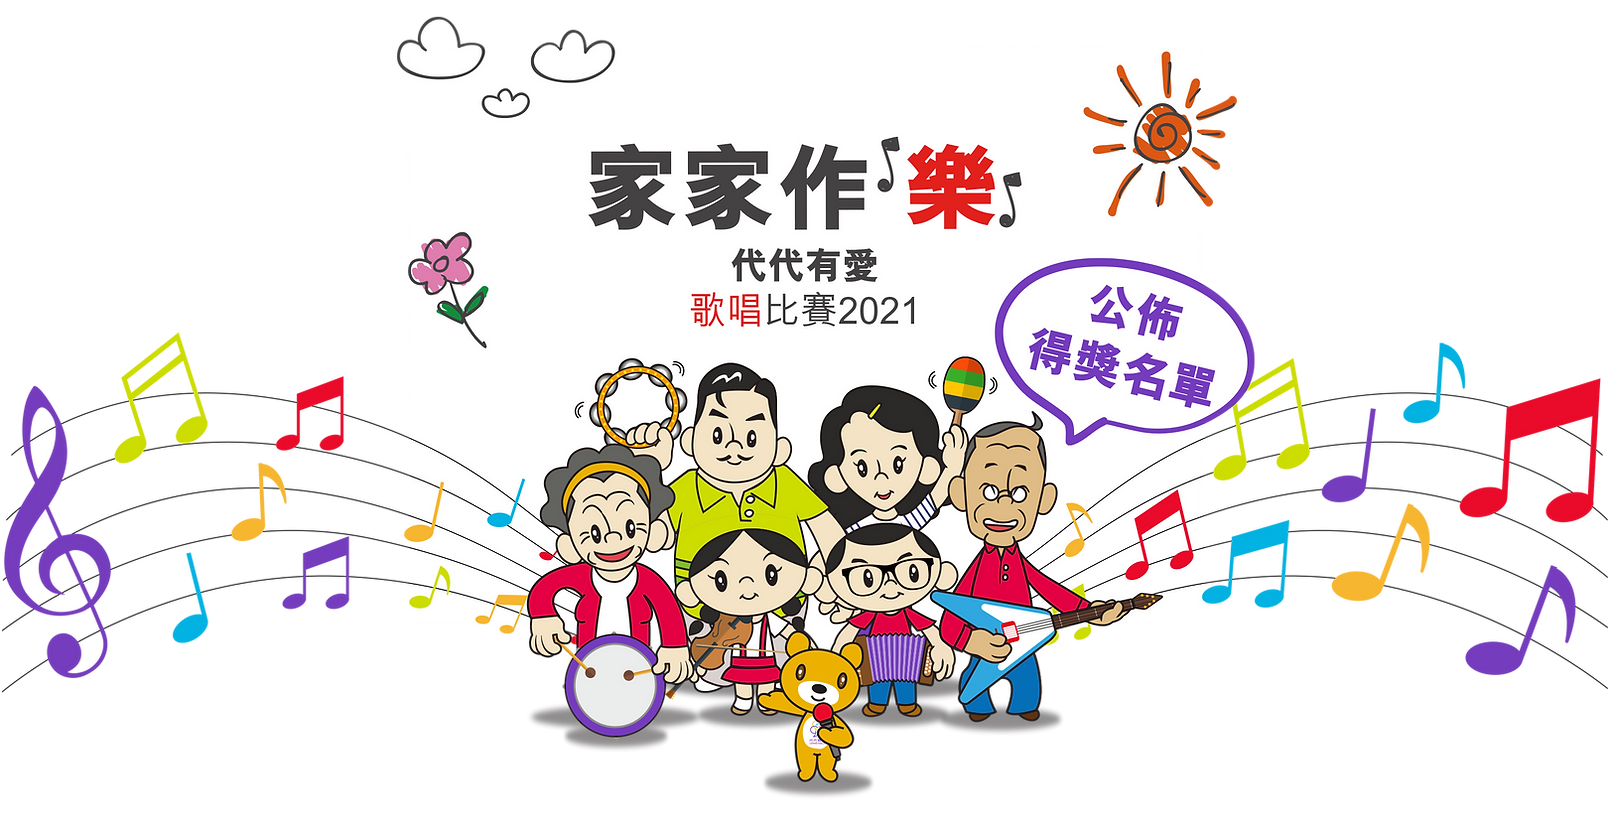 image-home2-cn 2.png